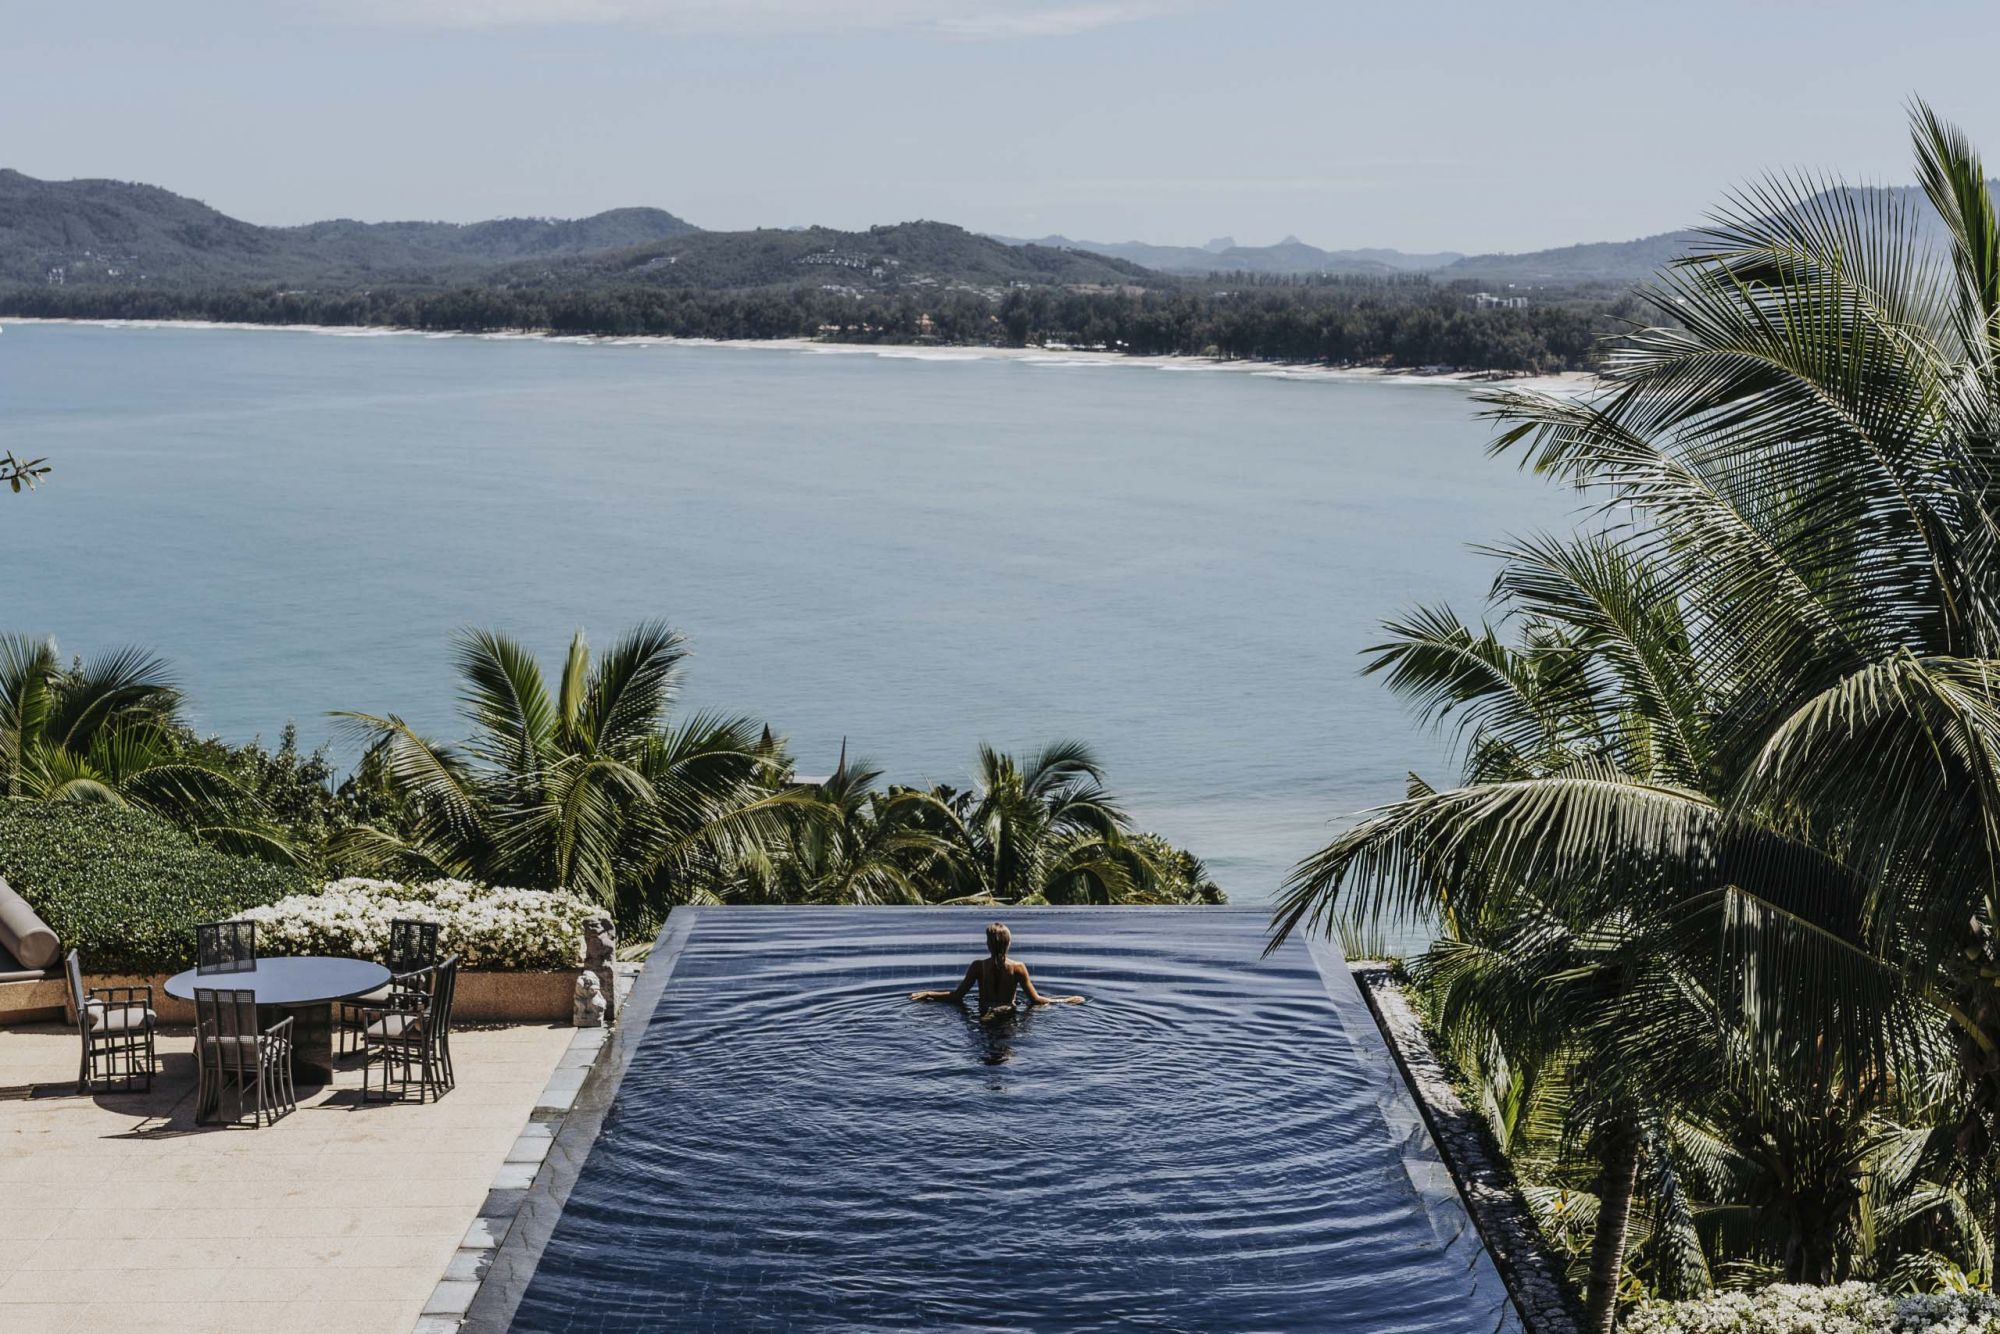 Amanpuri, Thailand - Accommodation, Villa 46, 5-Bedroom Ocean Villa, Pool, View